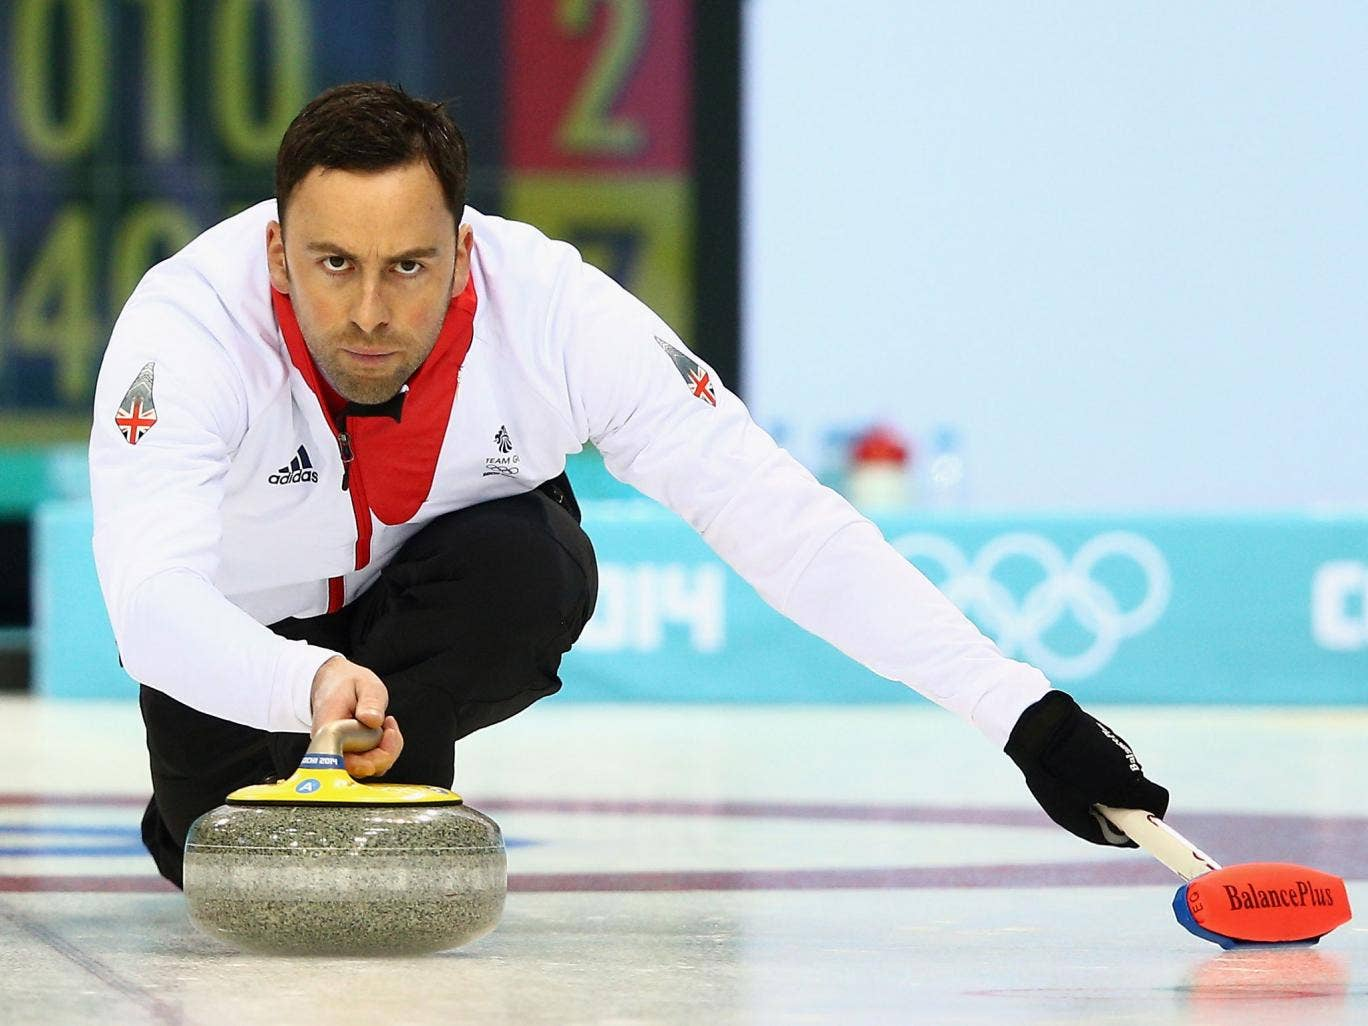 Team GB men's curling captain David Merdoch had a perfect record in his side's 7-4 victory over Russia